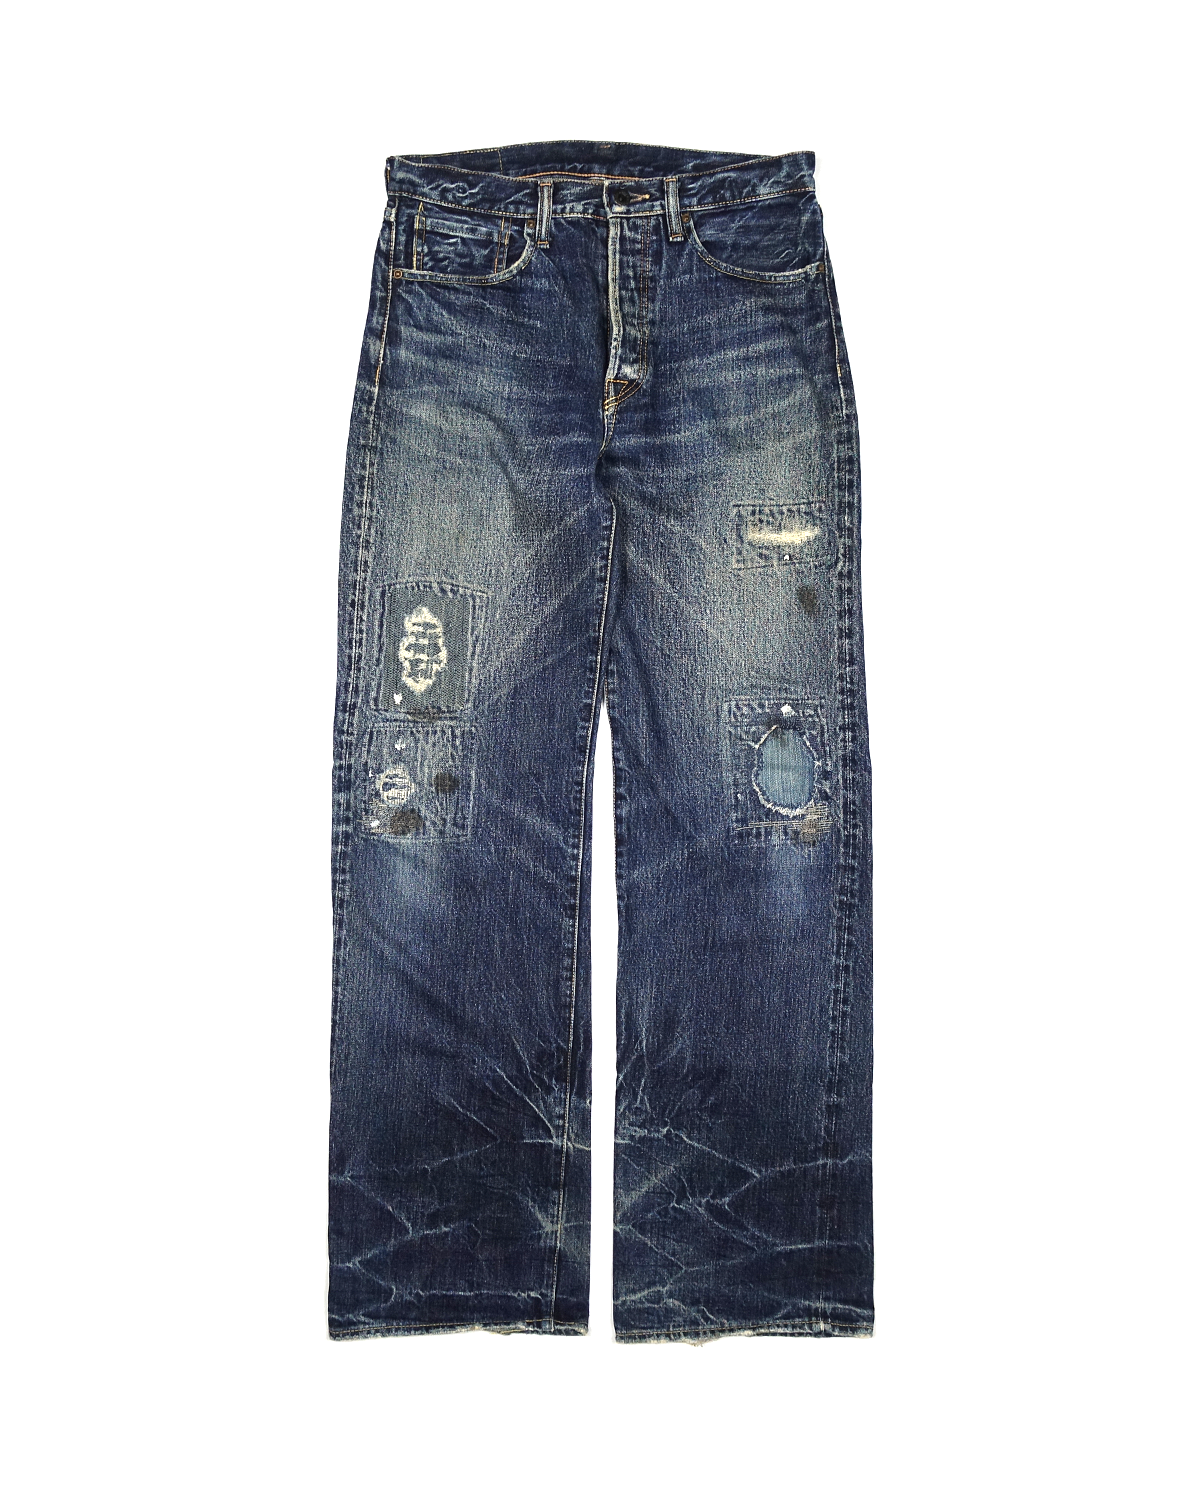 Kapital Relaxed Fit Indigo Boro Denim AW2005